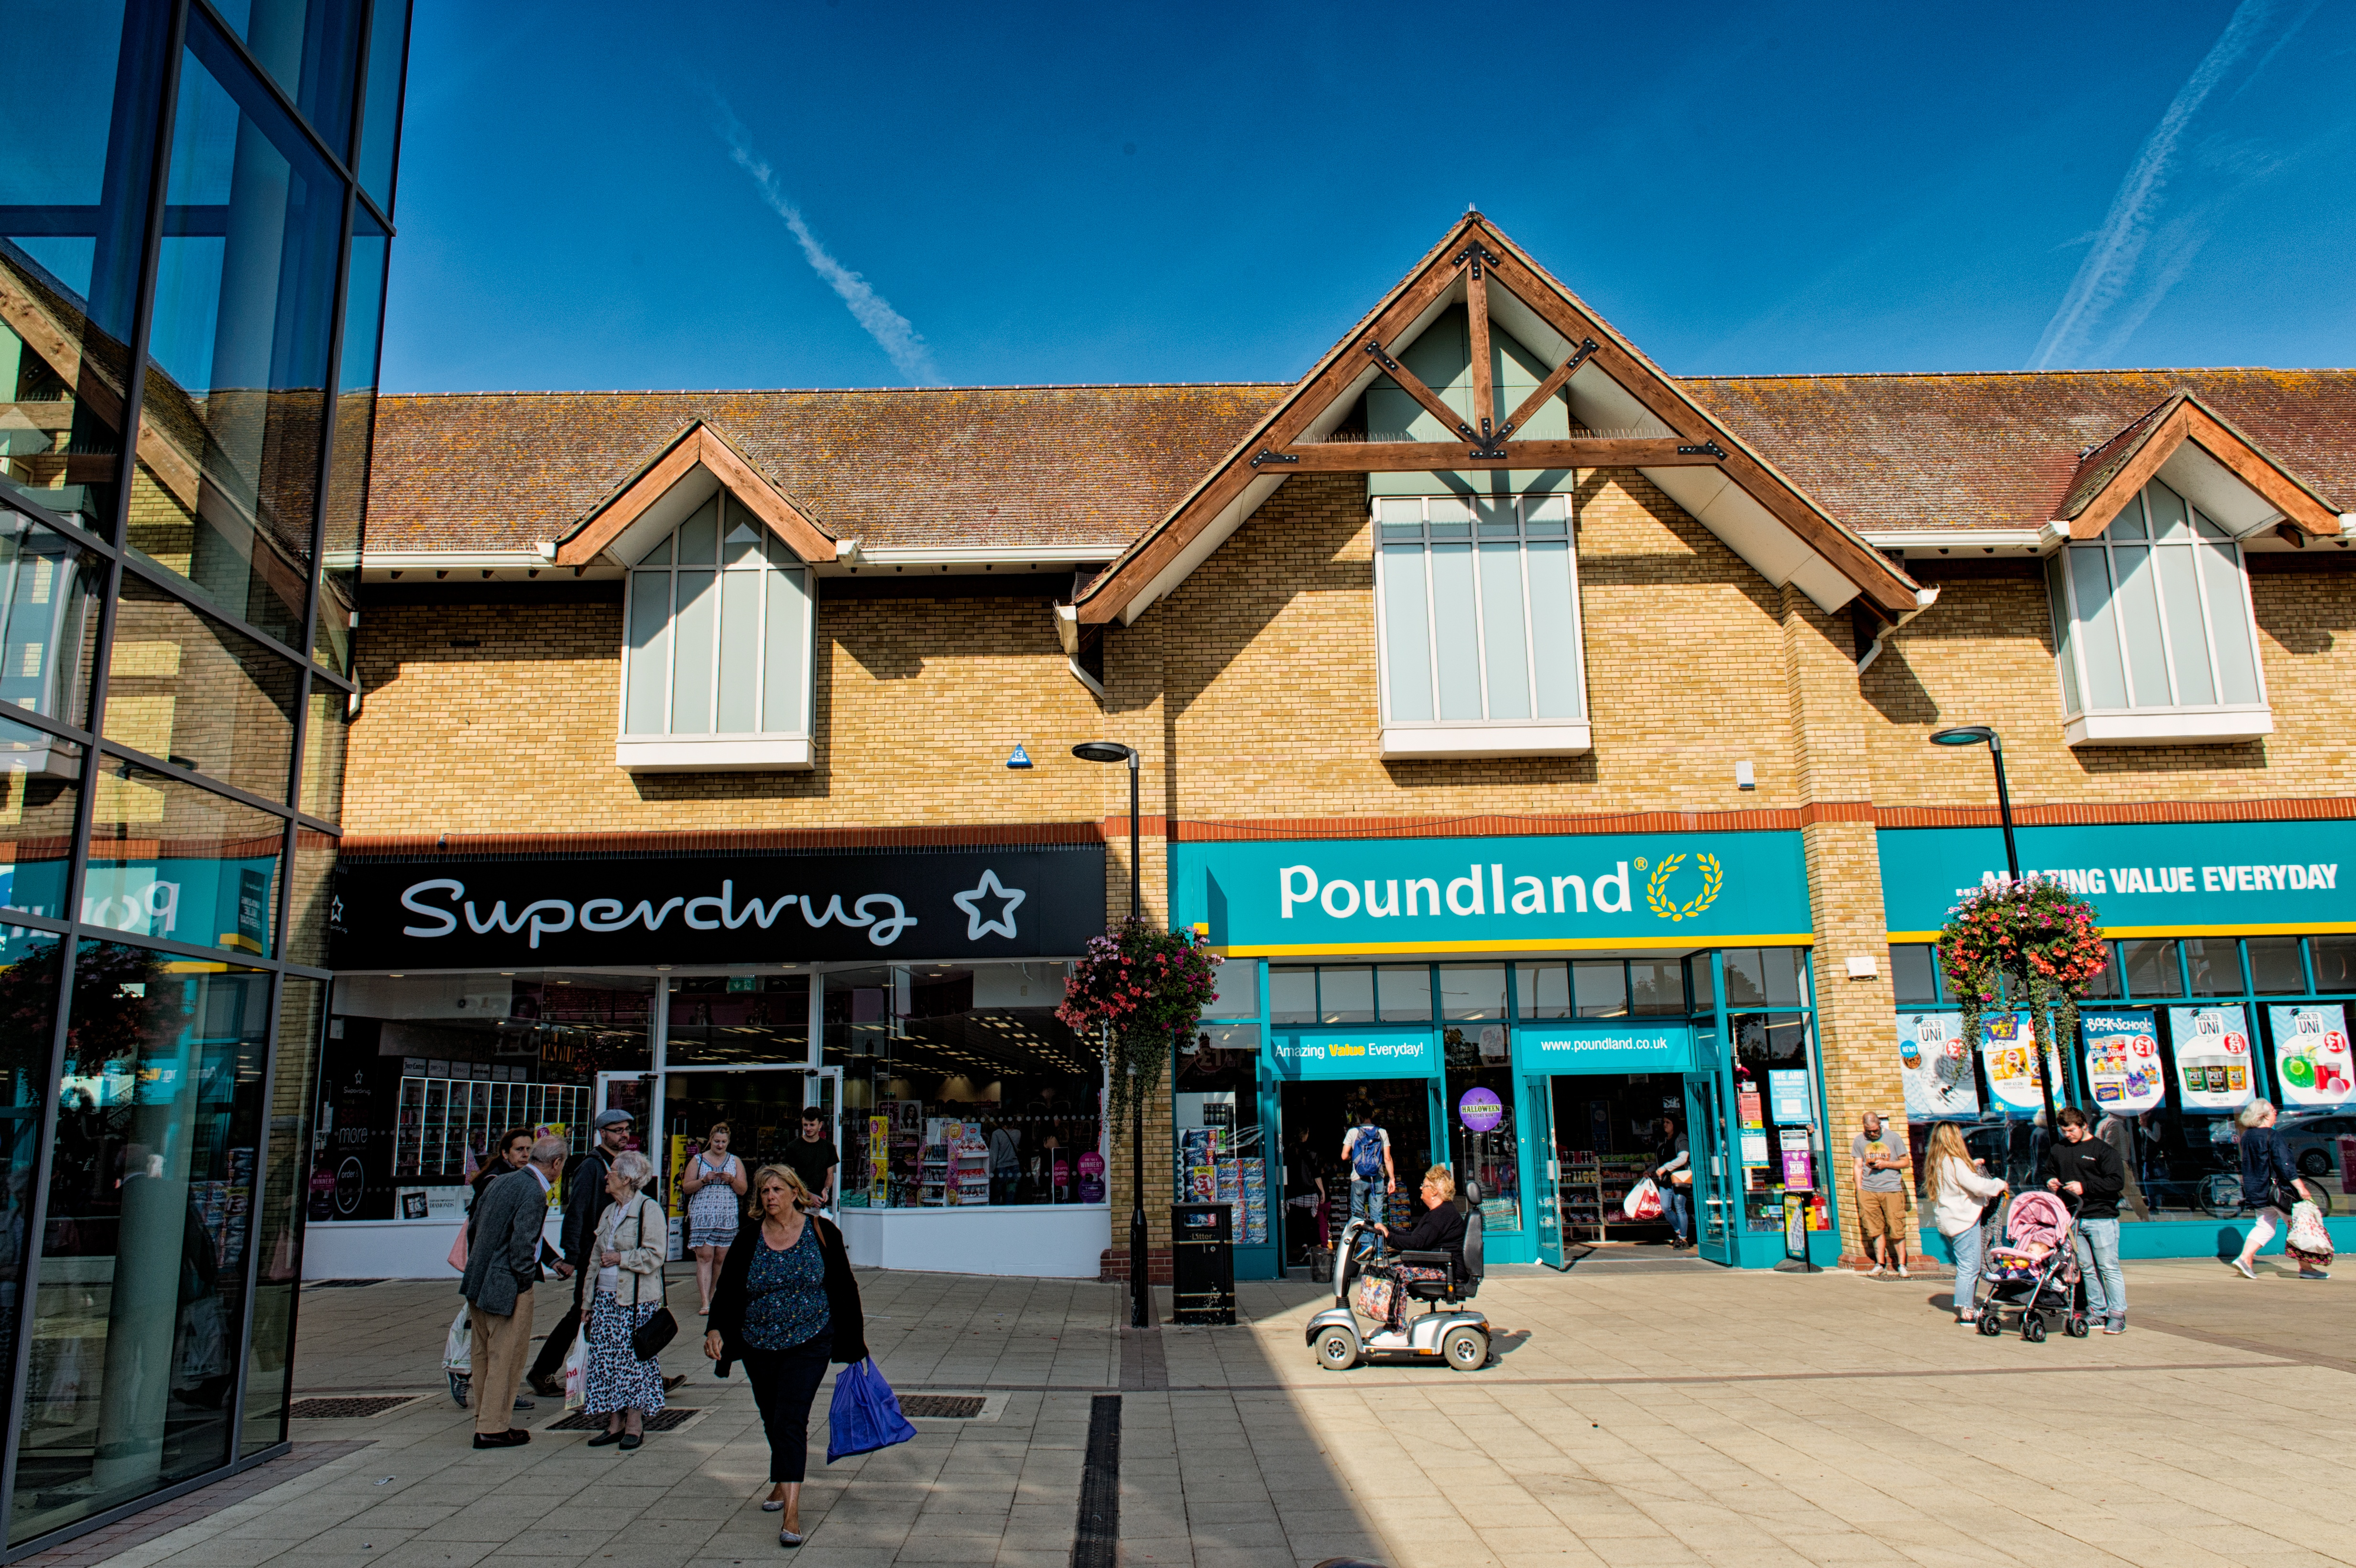 https://0201.nccdn.net/1_2/000/000/12d/5a3/Huntingdon-Shopping-Centre-55-4928x3280.jpg